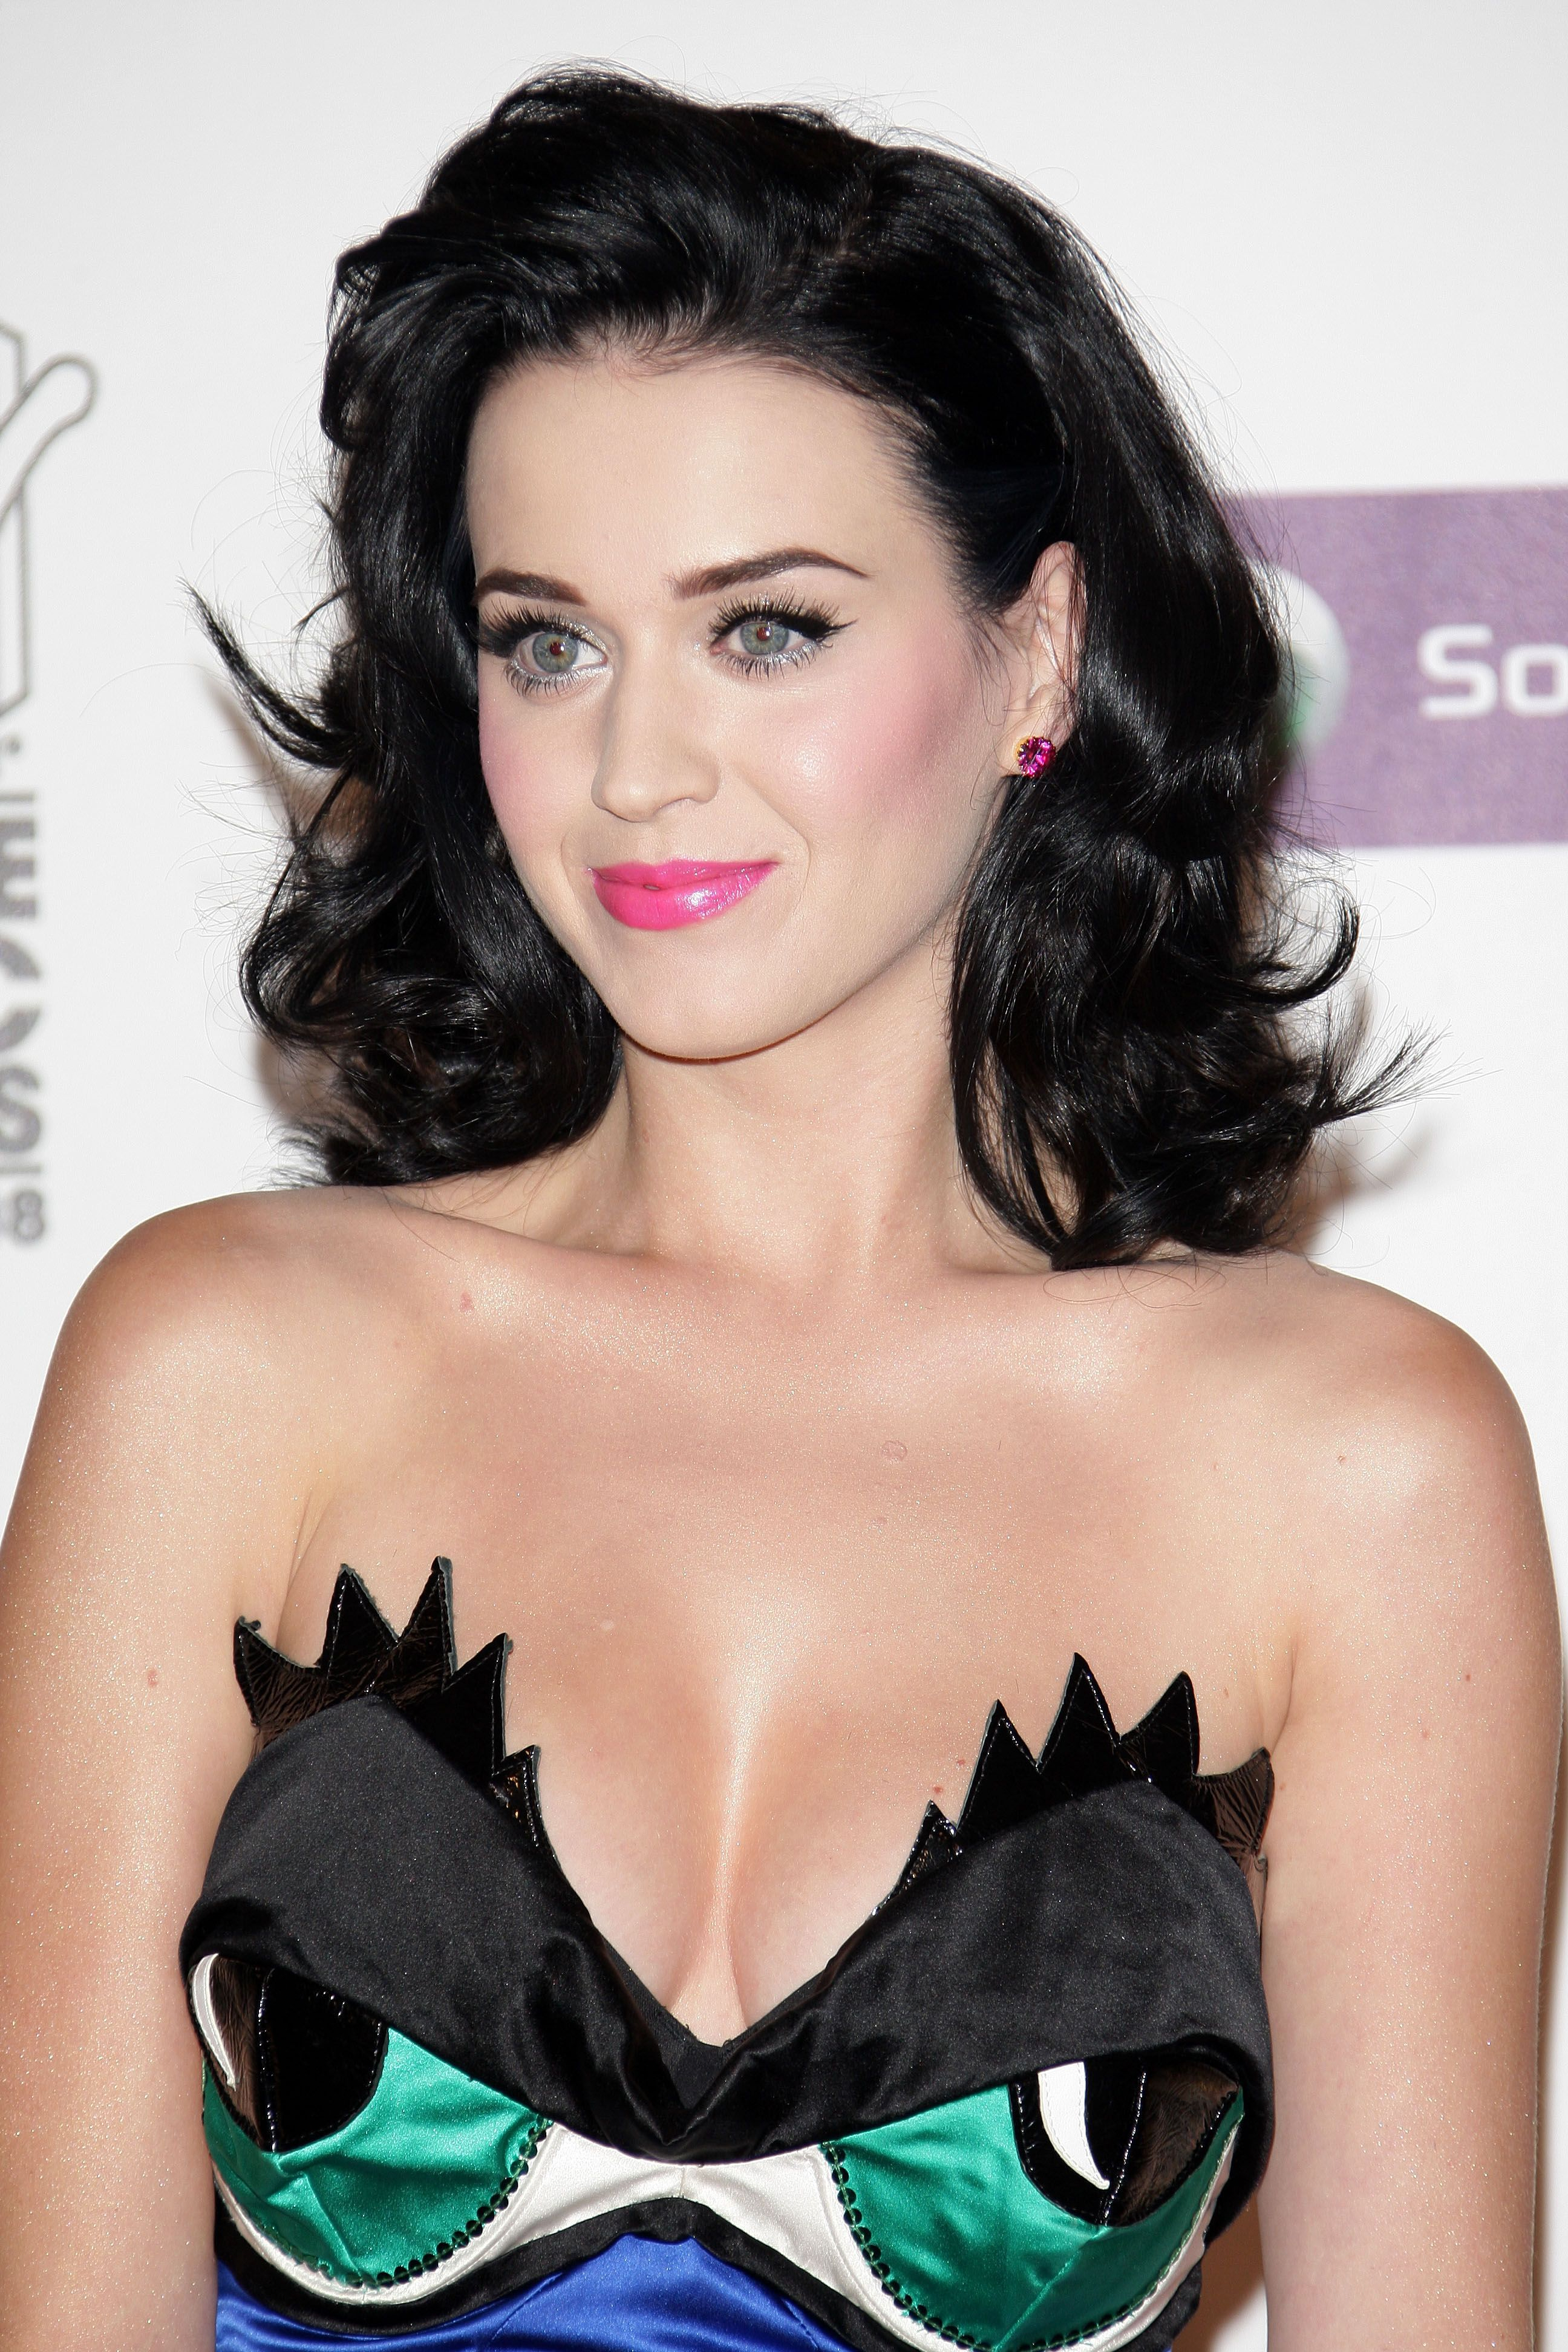 Katy Perry during the 2008 MTV Europe Music Awards held at at the Echo Arena on November 6, 2008 in Liverpool, England. | Source: Getty Images